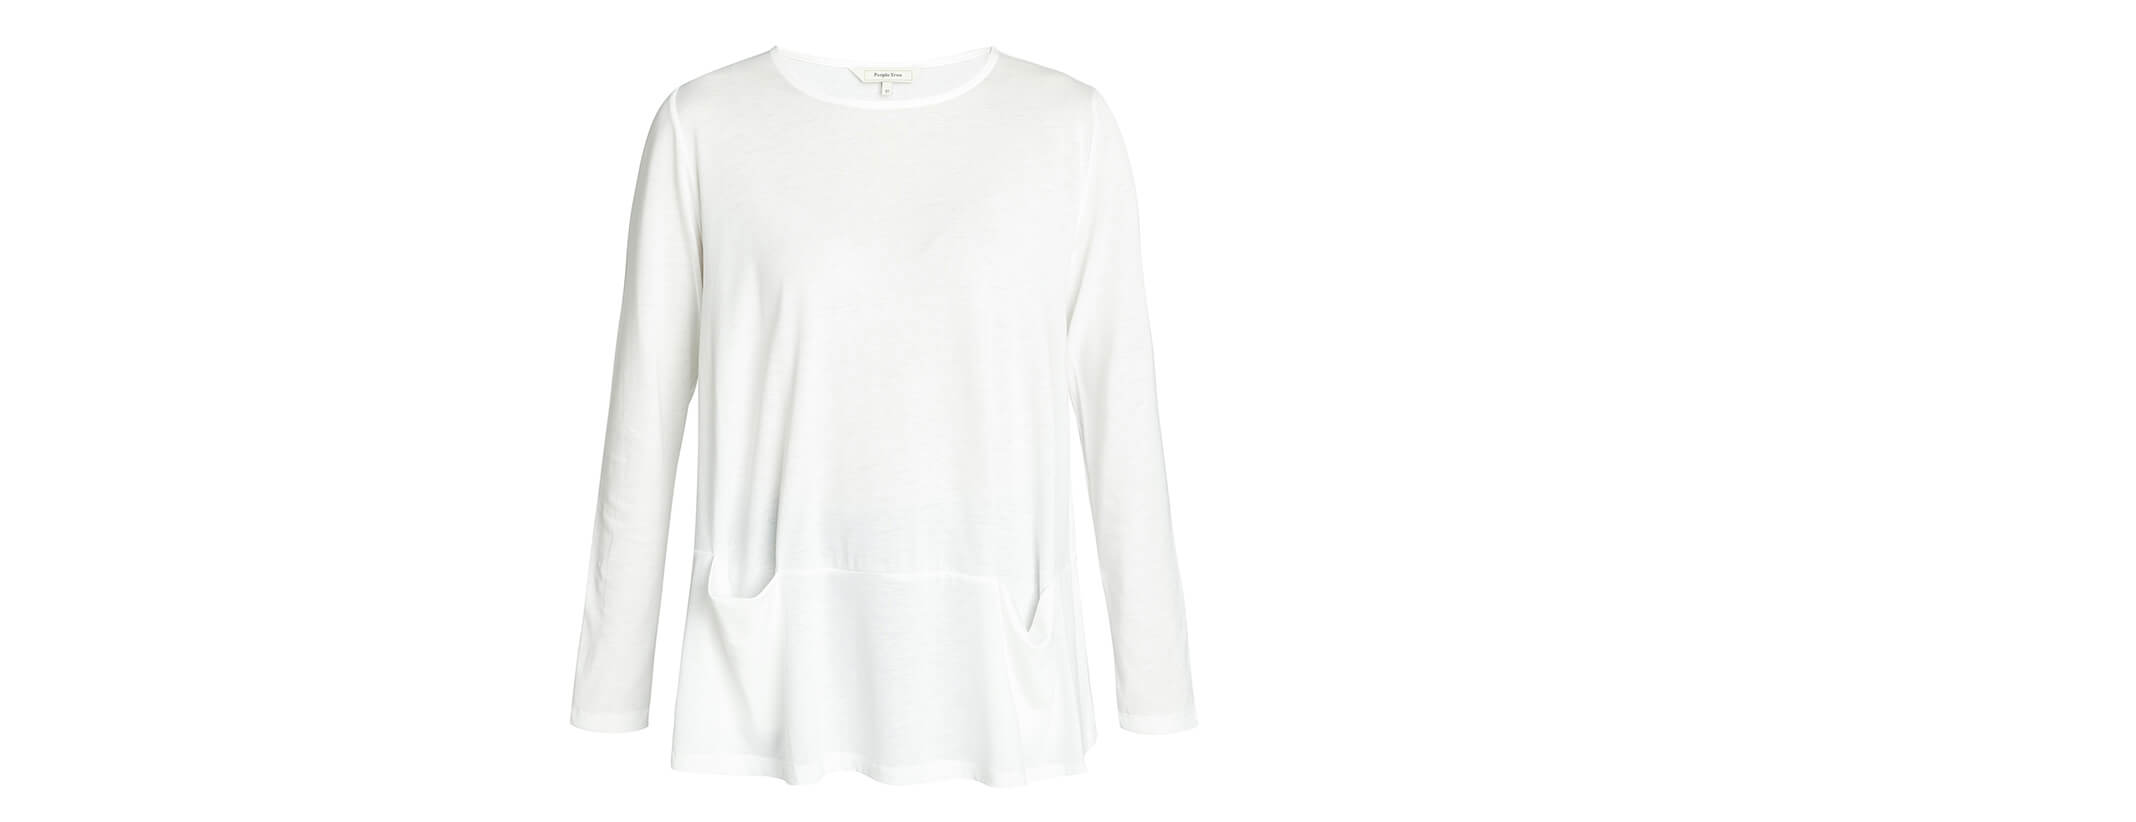 Relaxed & Stylish Tencel Ava Top, by People Tree